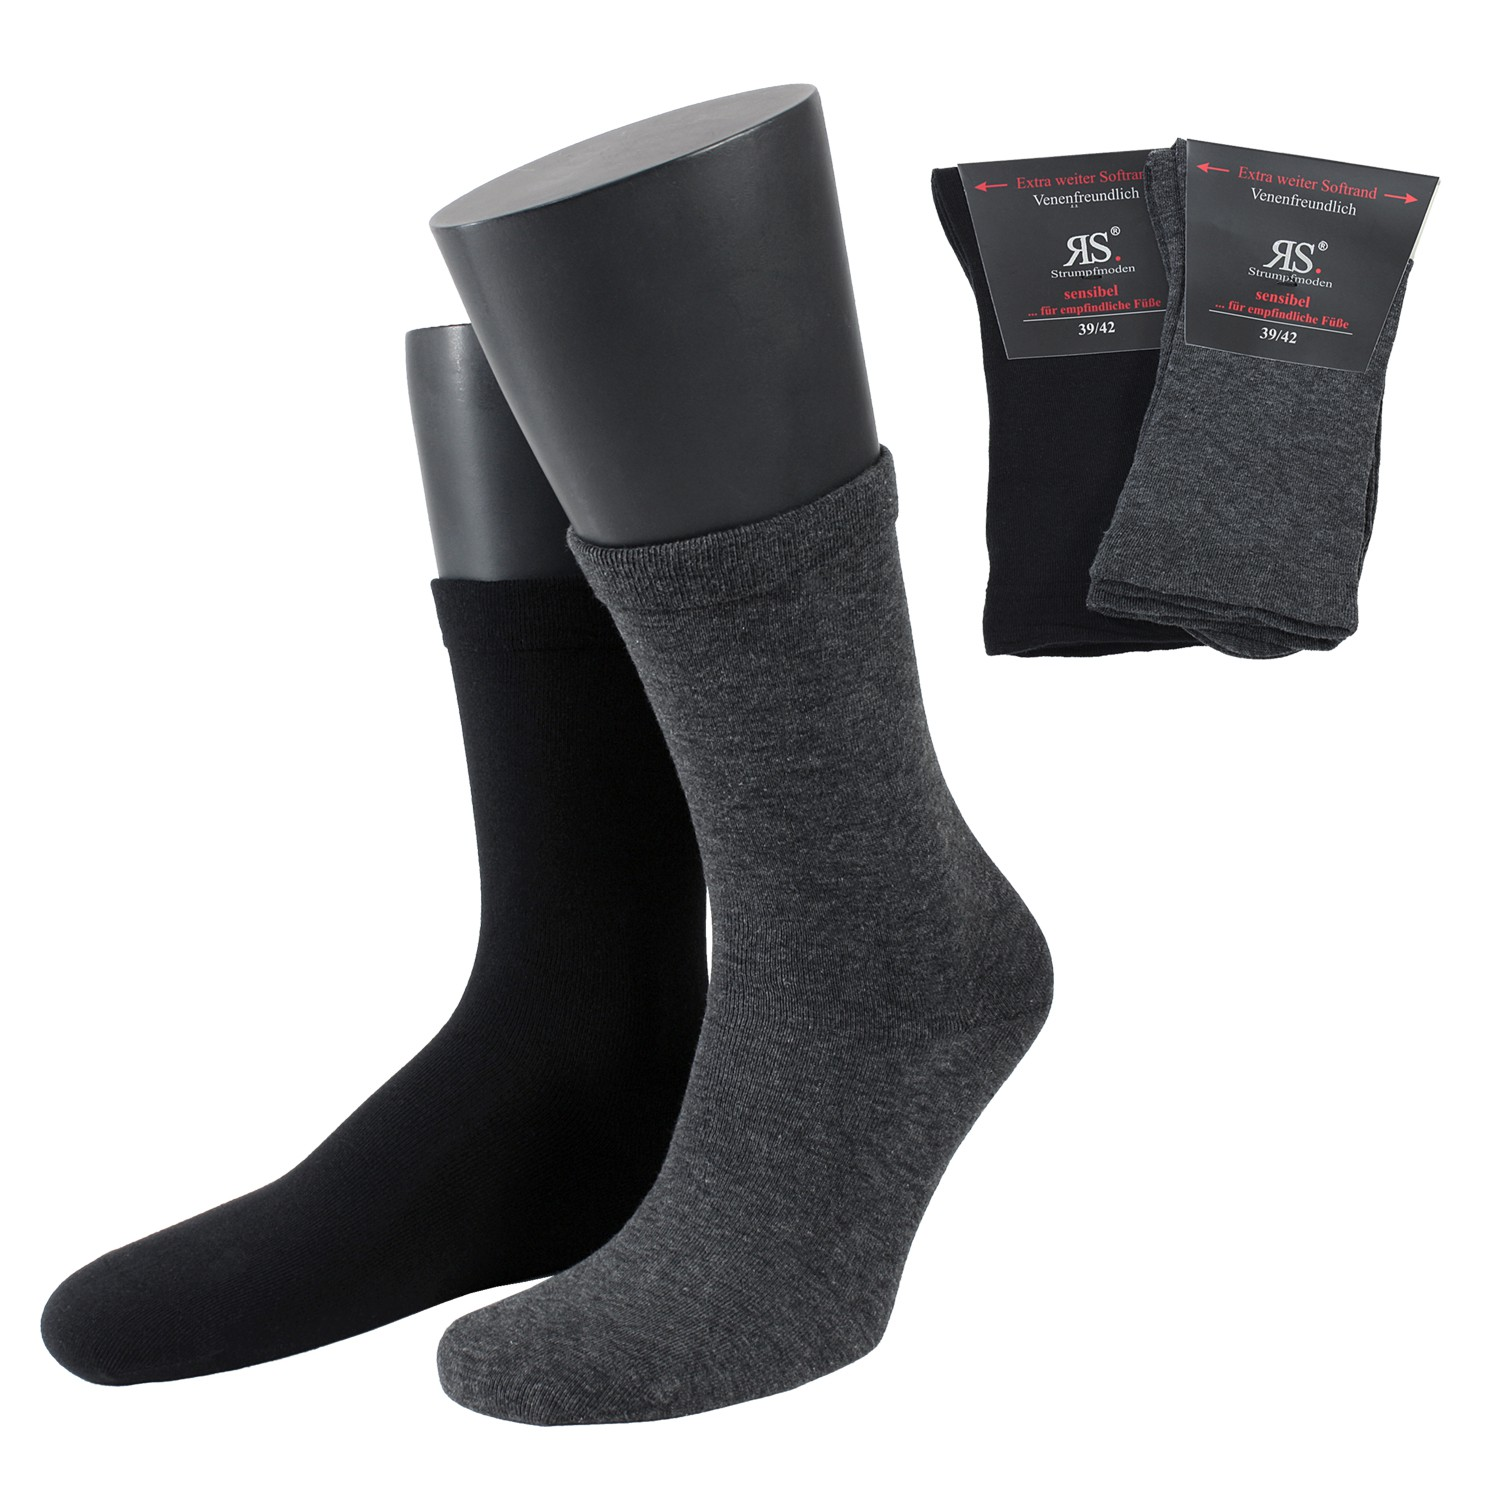 Detail Image to Double pack socks with extra wide border by Riese in grey/black up to oversize 50